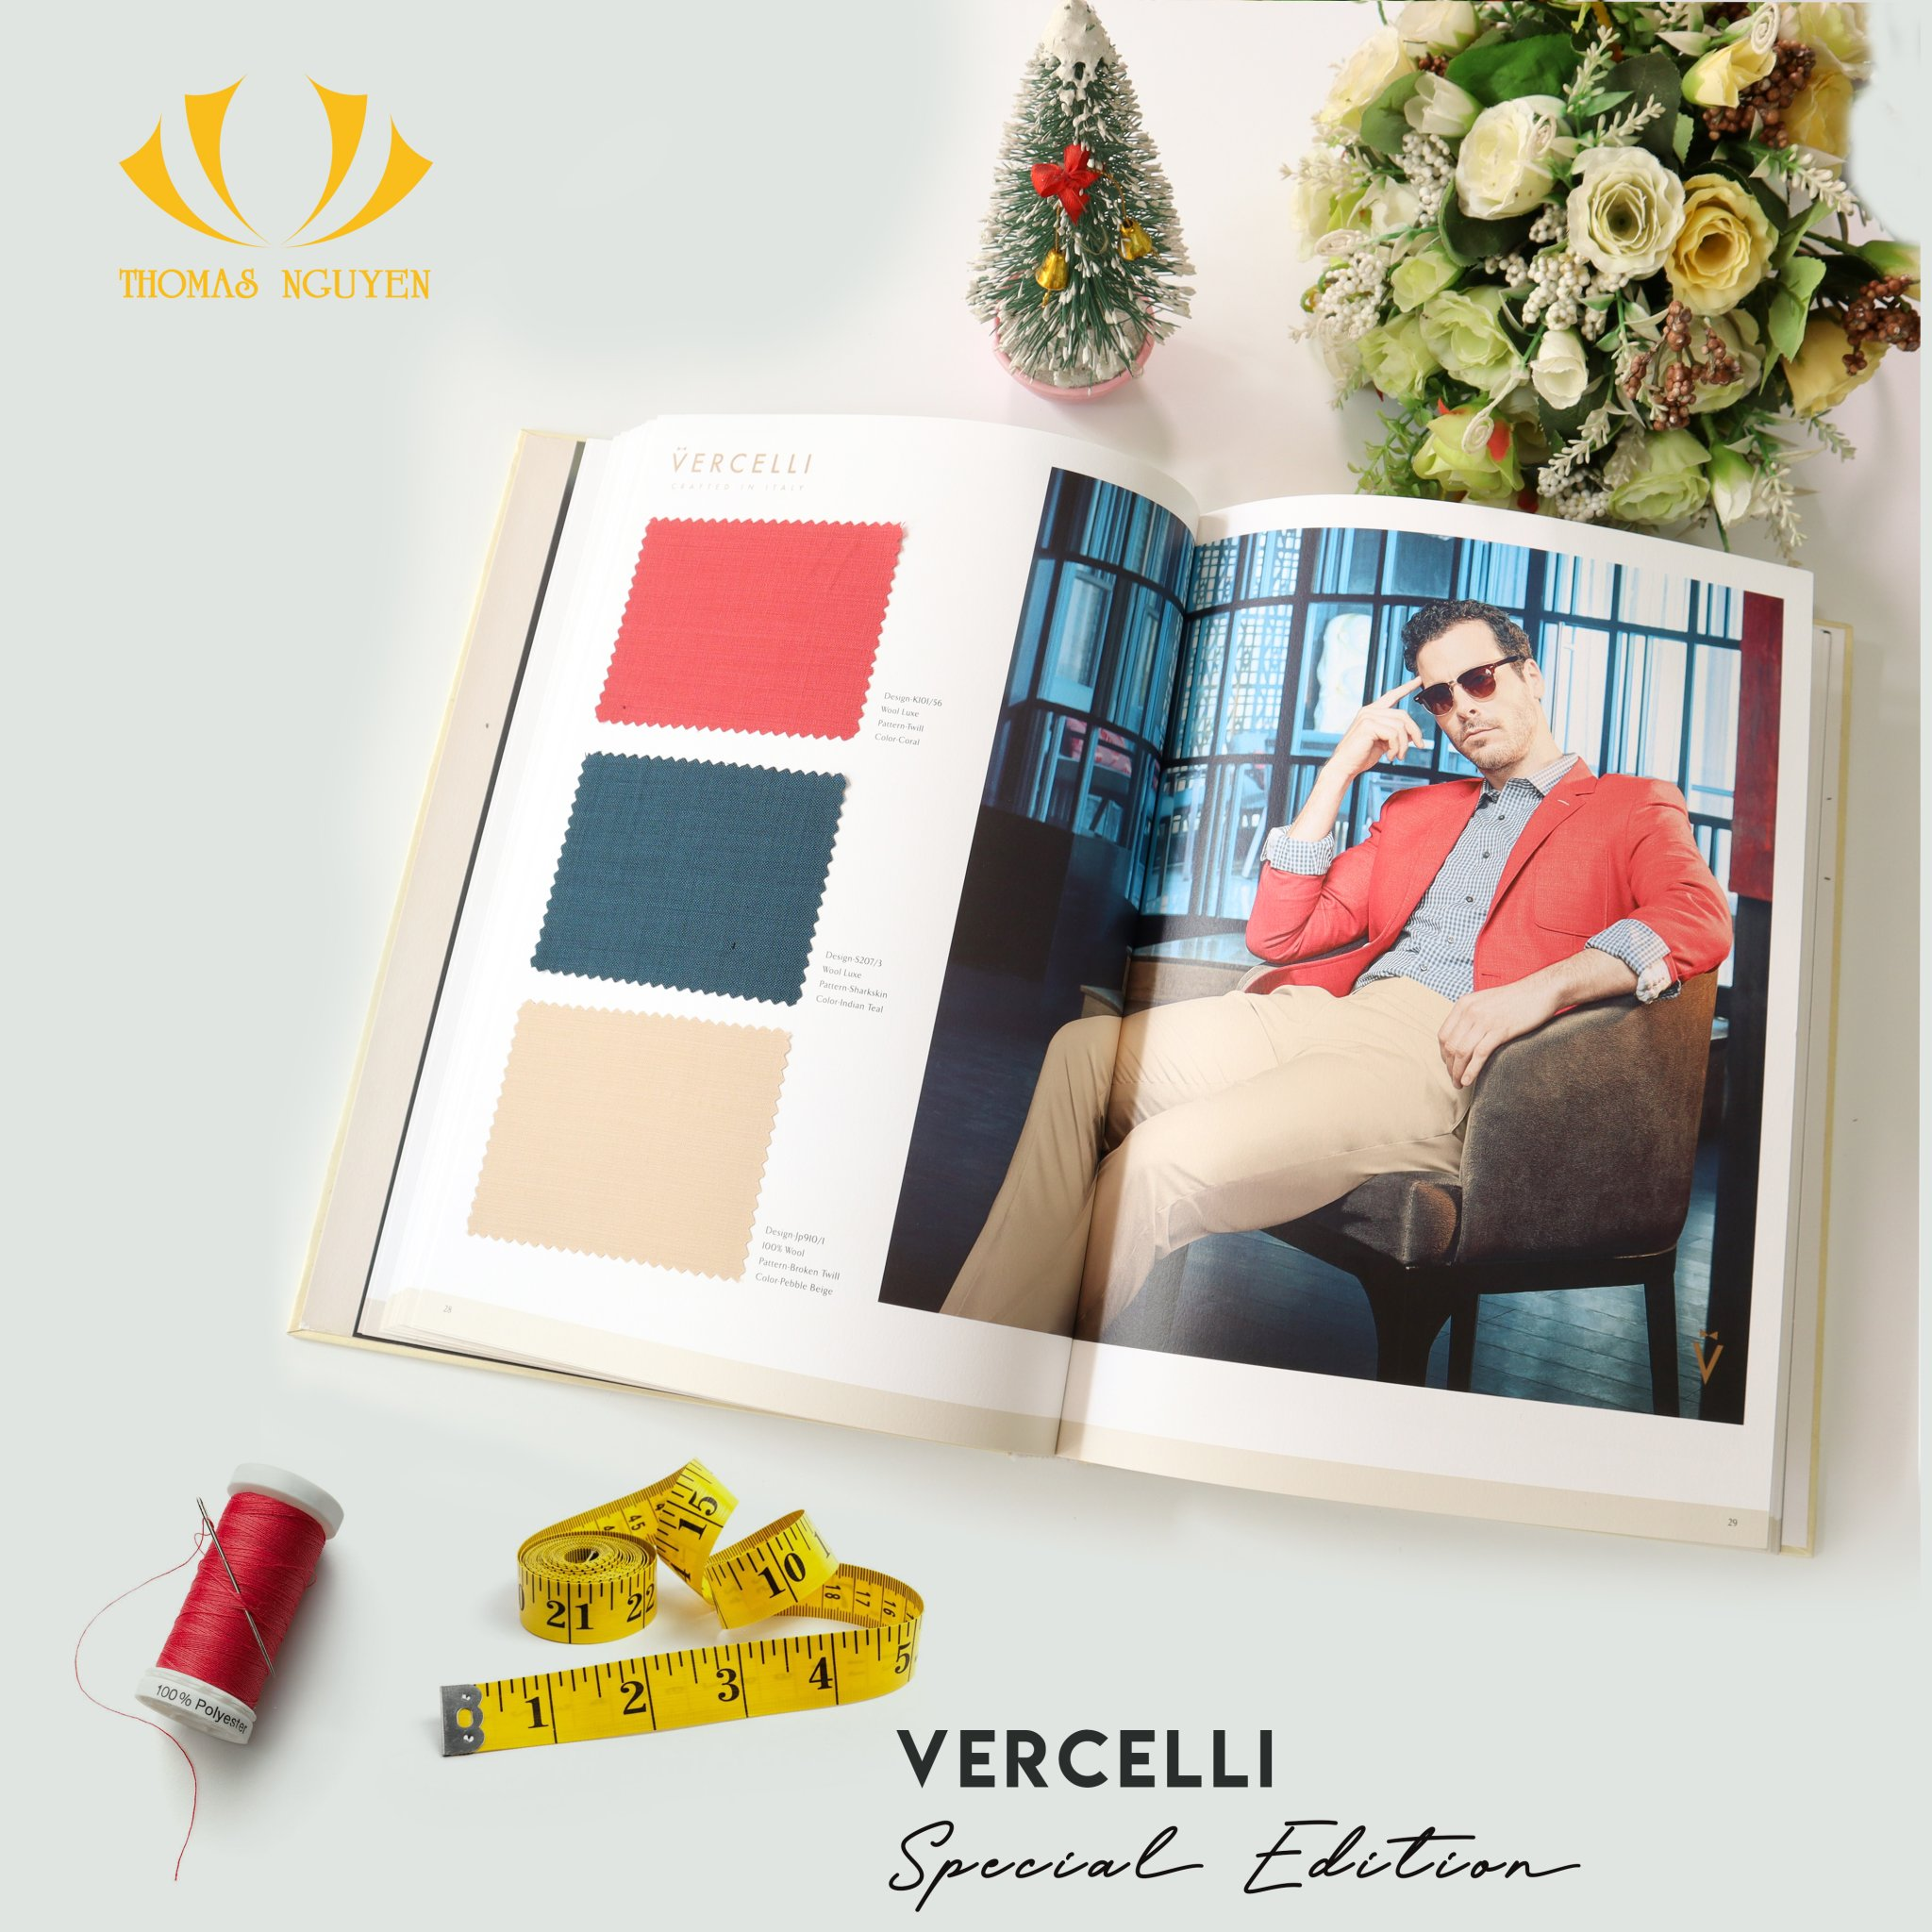 BST Vải Wool độc đáo Vercelli 2020 Collection Special Edition